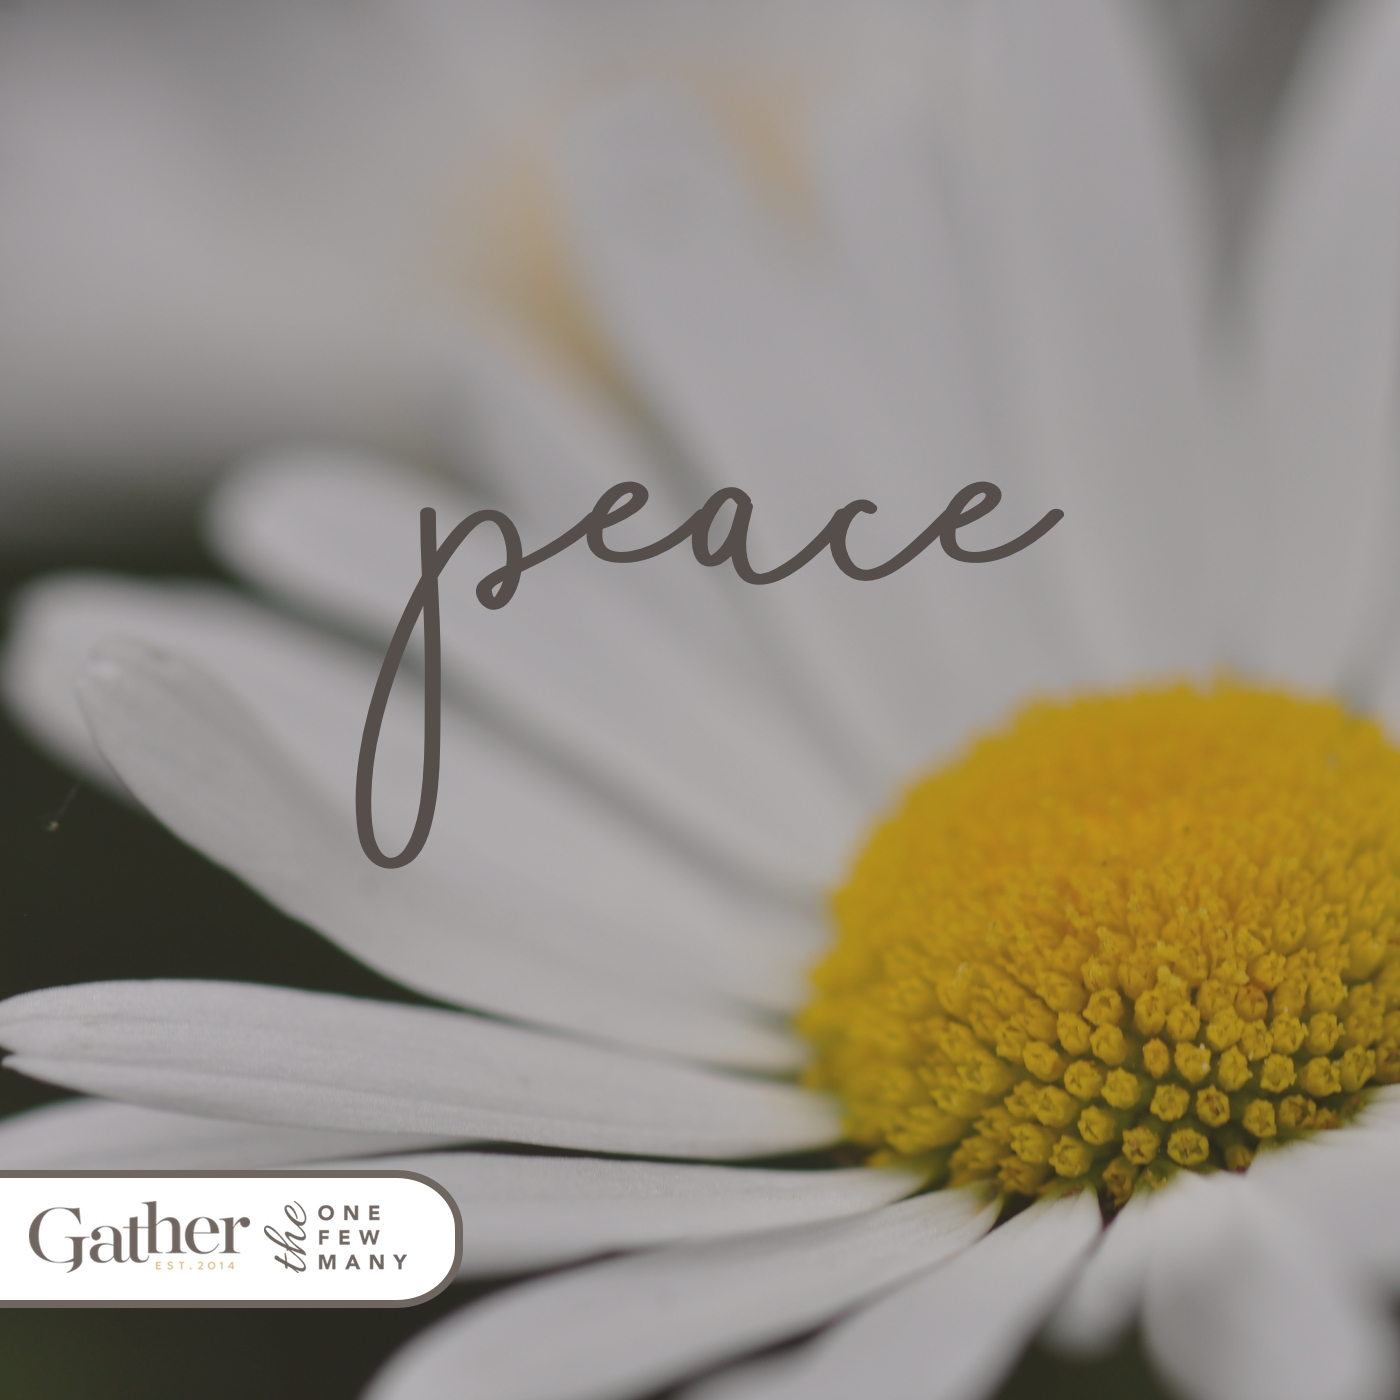 We can always ask Jesus who is the Prince of Peace (Isaiah 9:6